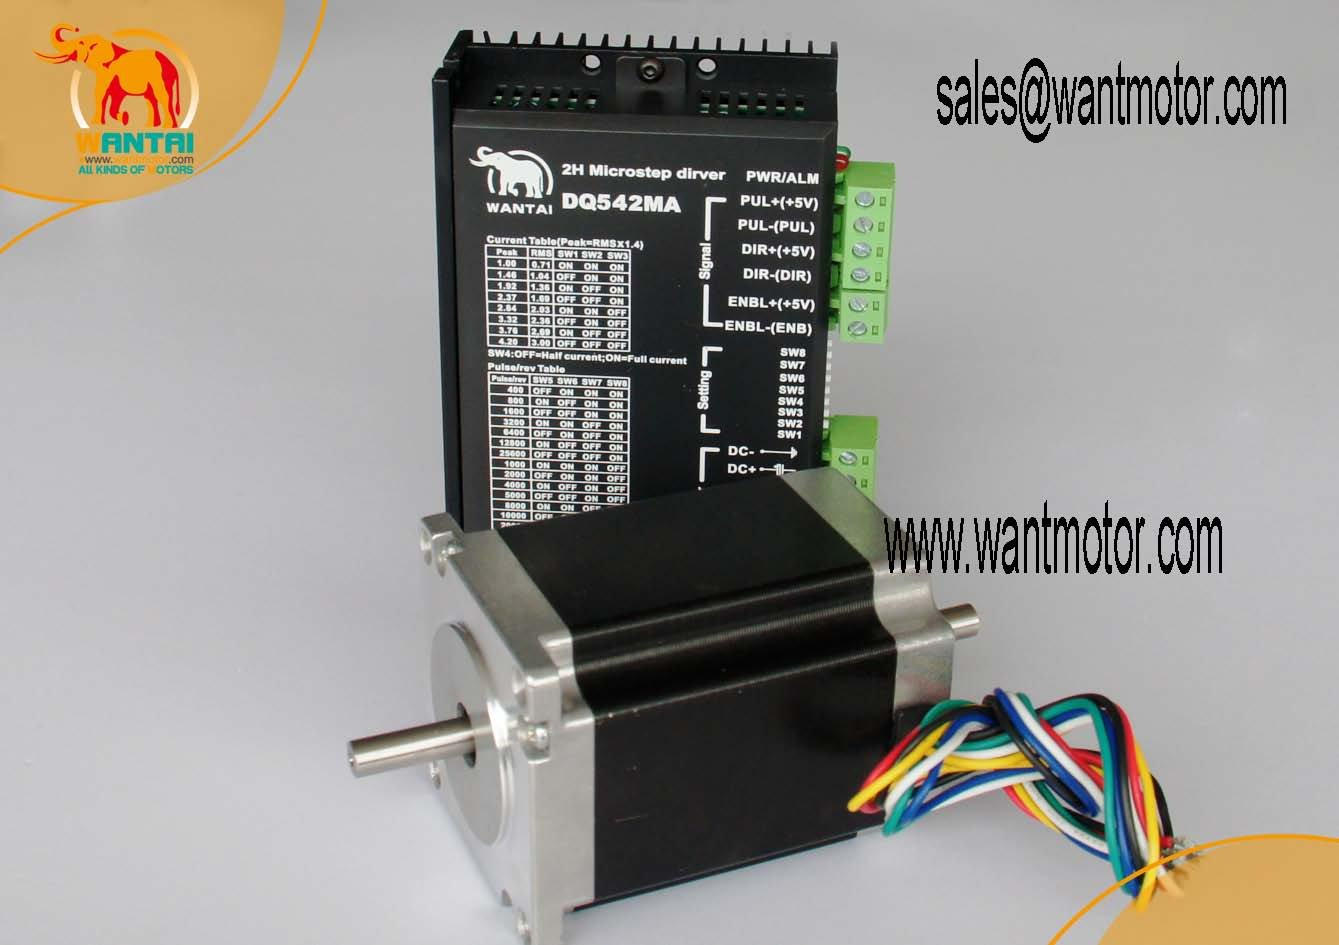 High Nema 23 Stepper Motor 185oz-in CNC Matching Driver 4.2A, 50VDC,125 Microstep Engaving Mill germany delivery free vat 4pcs dm556d 50vdc 5 6a 256 microstep high performance digital stepping motor driver